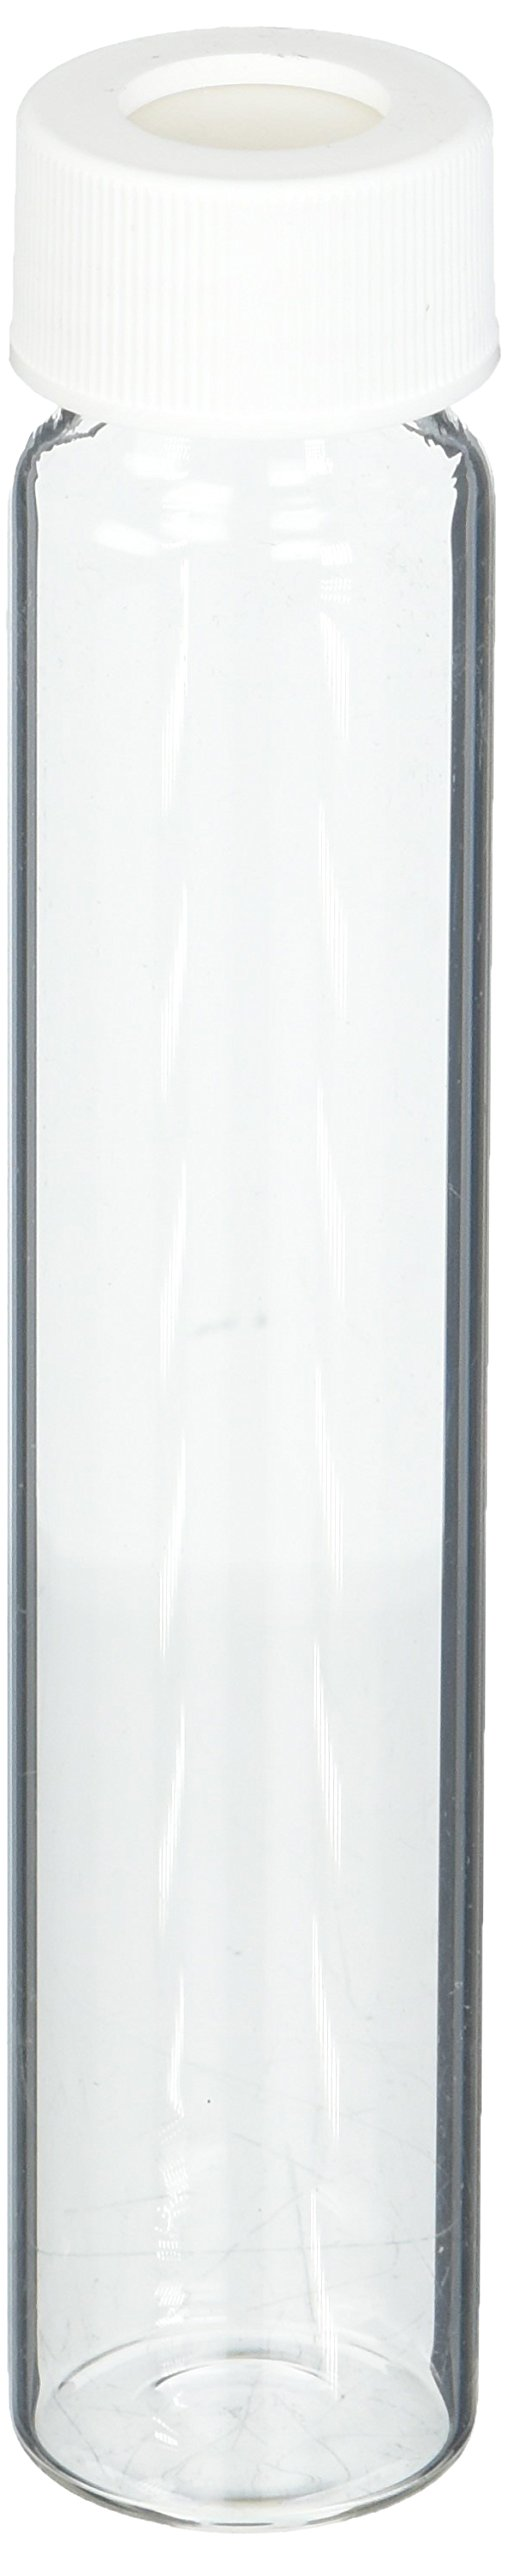 Thomas Scientific 9-093-2 Clear Borosilicate Glass VOA Vial with White Polypropylene 24-414mm Open Top Closure and 0.100'' PTFE/Silicone Septa, Precleaned, 60mL Capacity (Pack of 72)